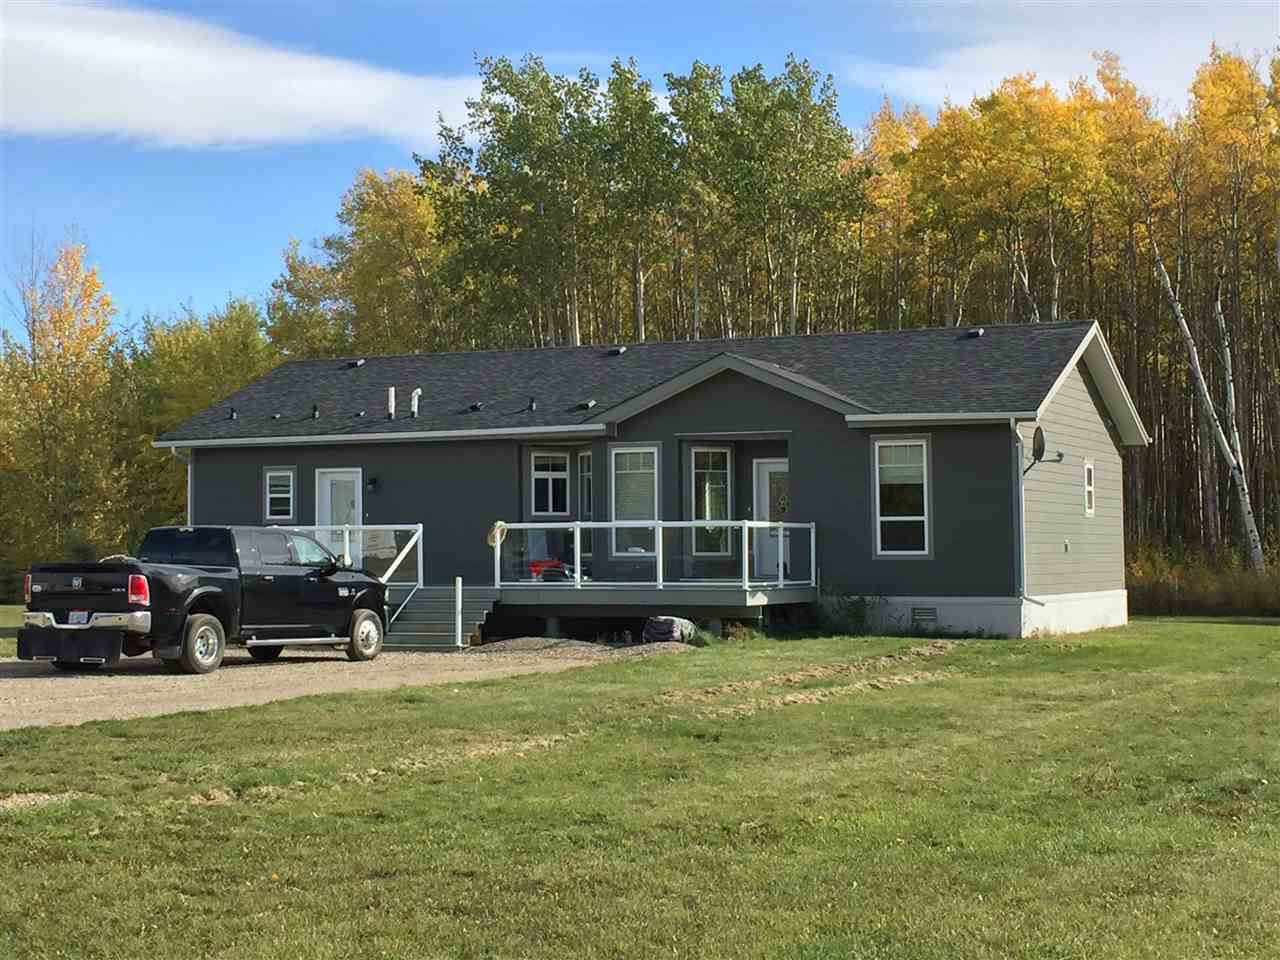 Main Photo: 9808 MAPLE Street in FT ST JOHN: Fort St. John - Rural W 100th Manufactured Home for sale (Fort St. John (Zone 60))  : MLS®# R2002304